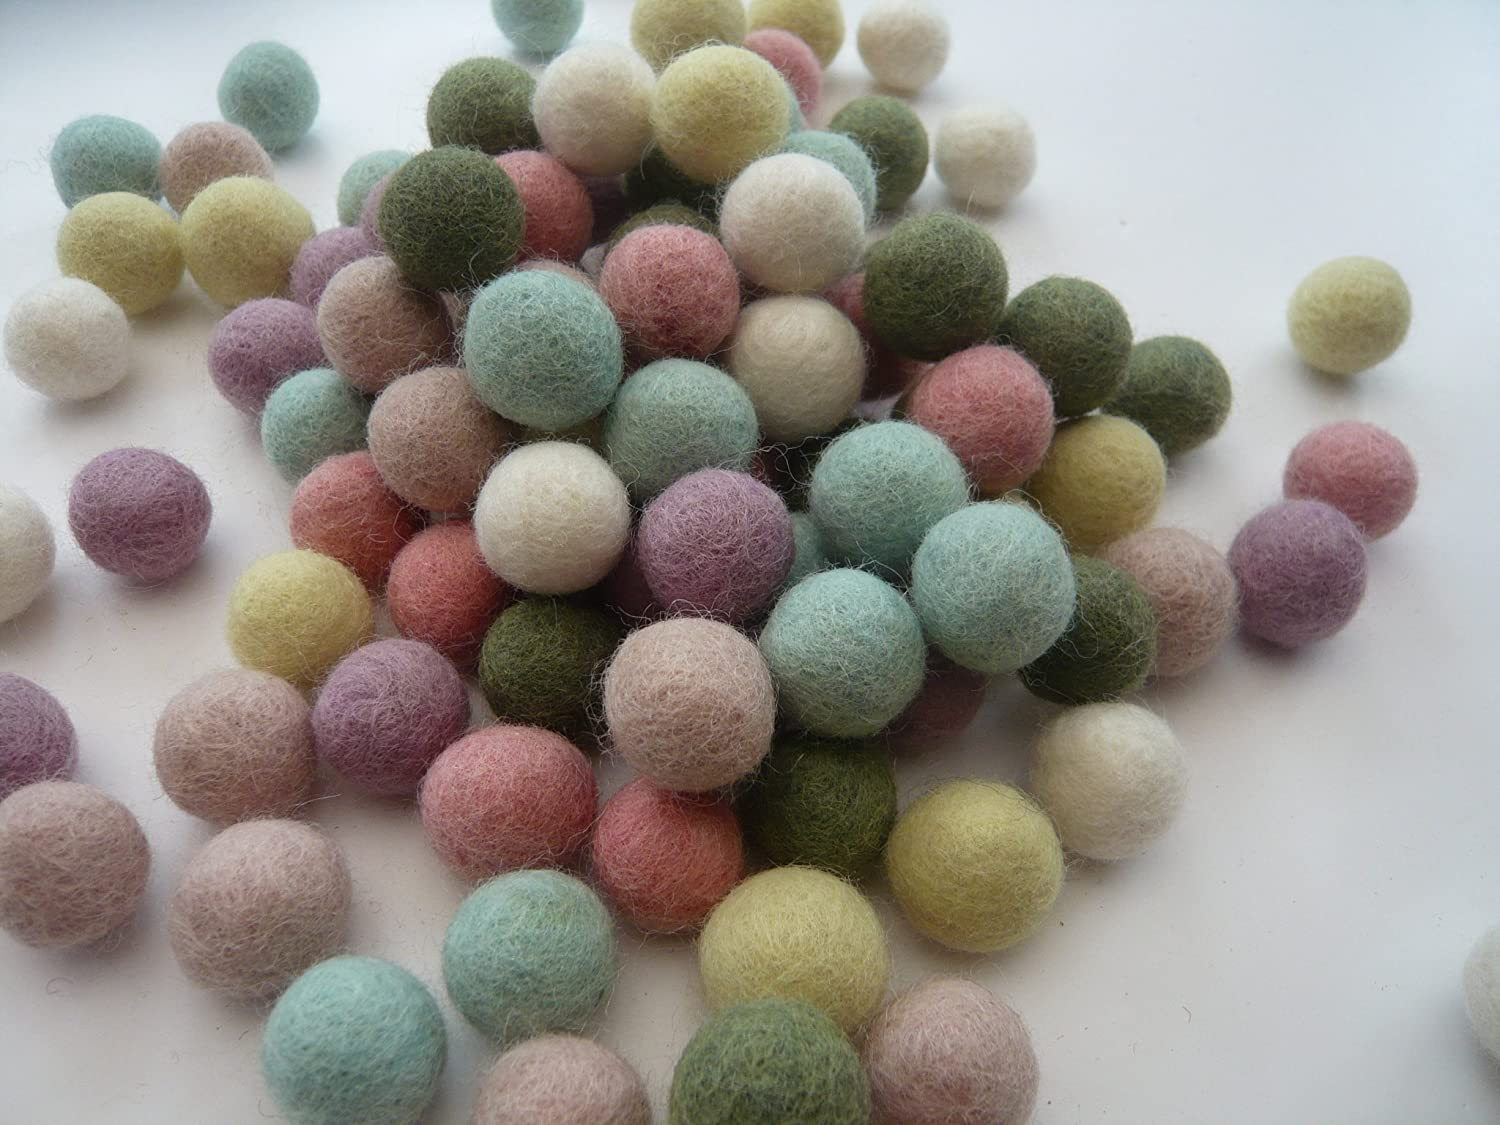 Heidifeathersハンドメイドフェルトボール – Choose Size And Mix 80g 2.8oz 5060329984875  2cm Pastels B01JZK19E6